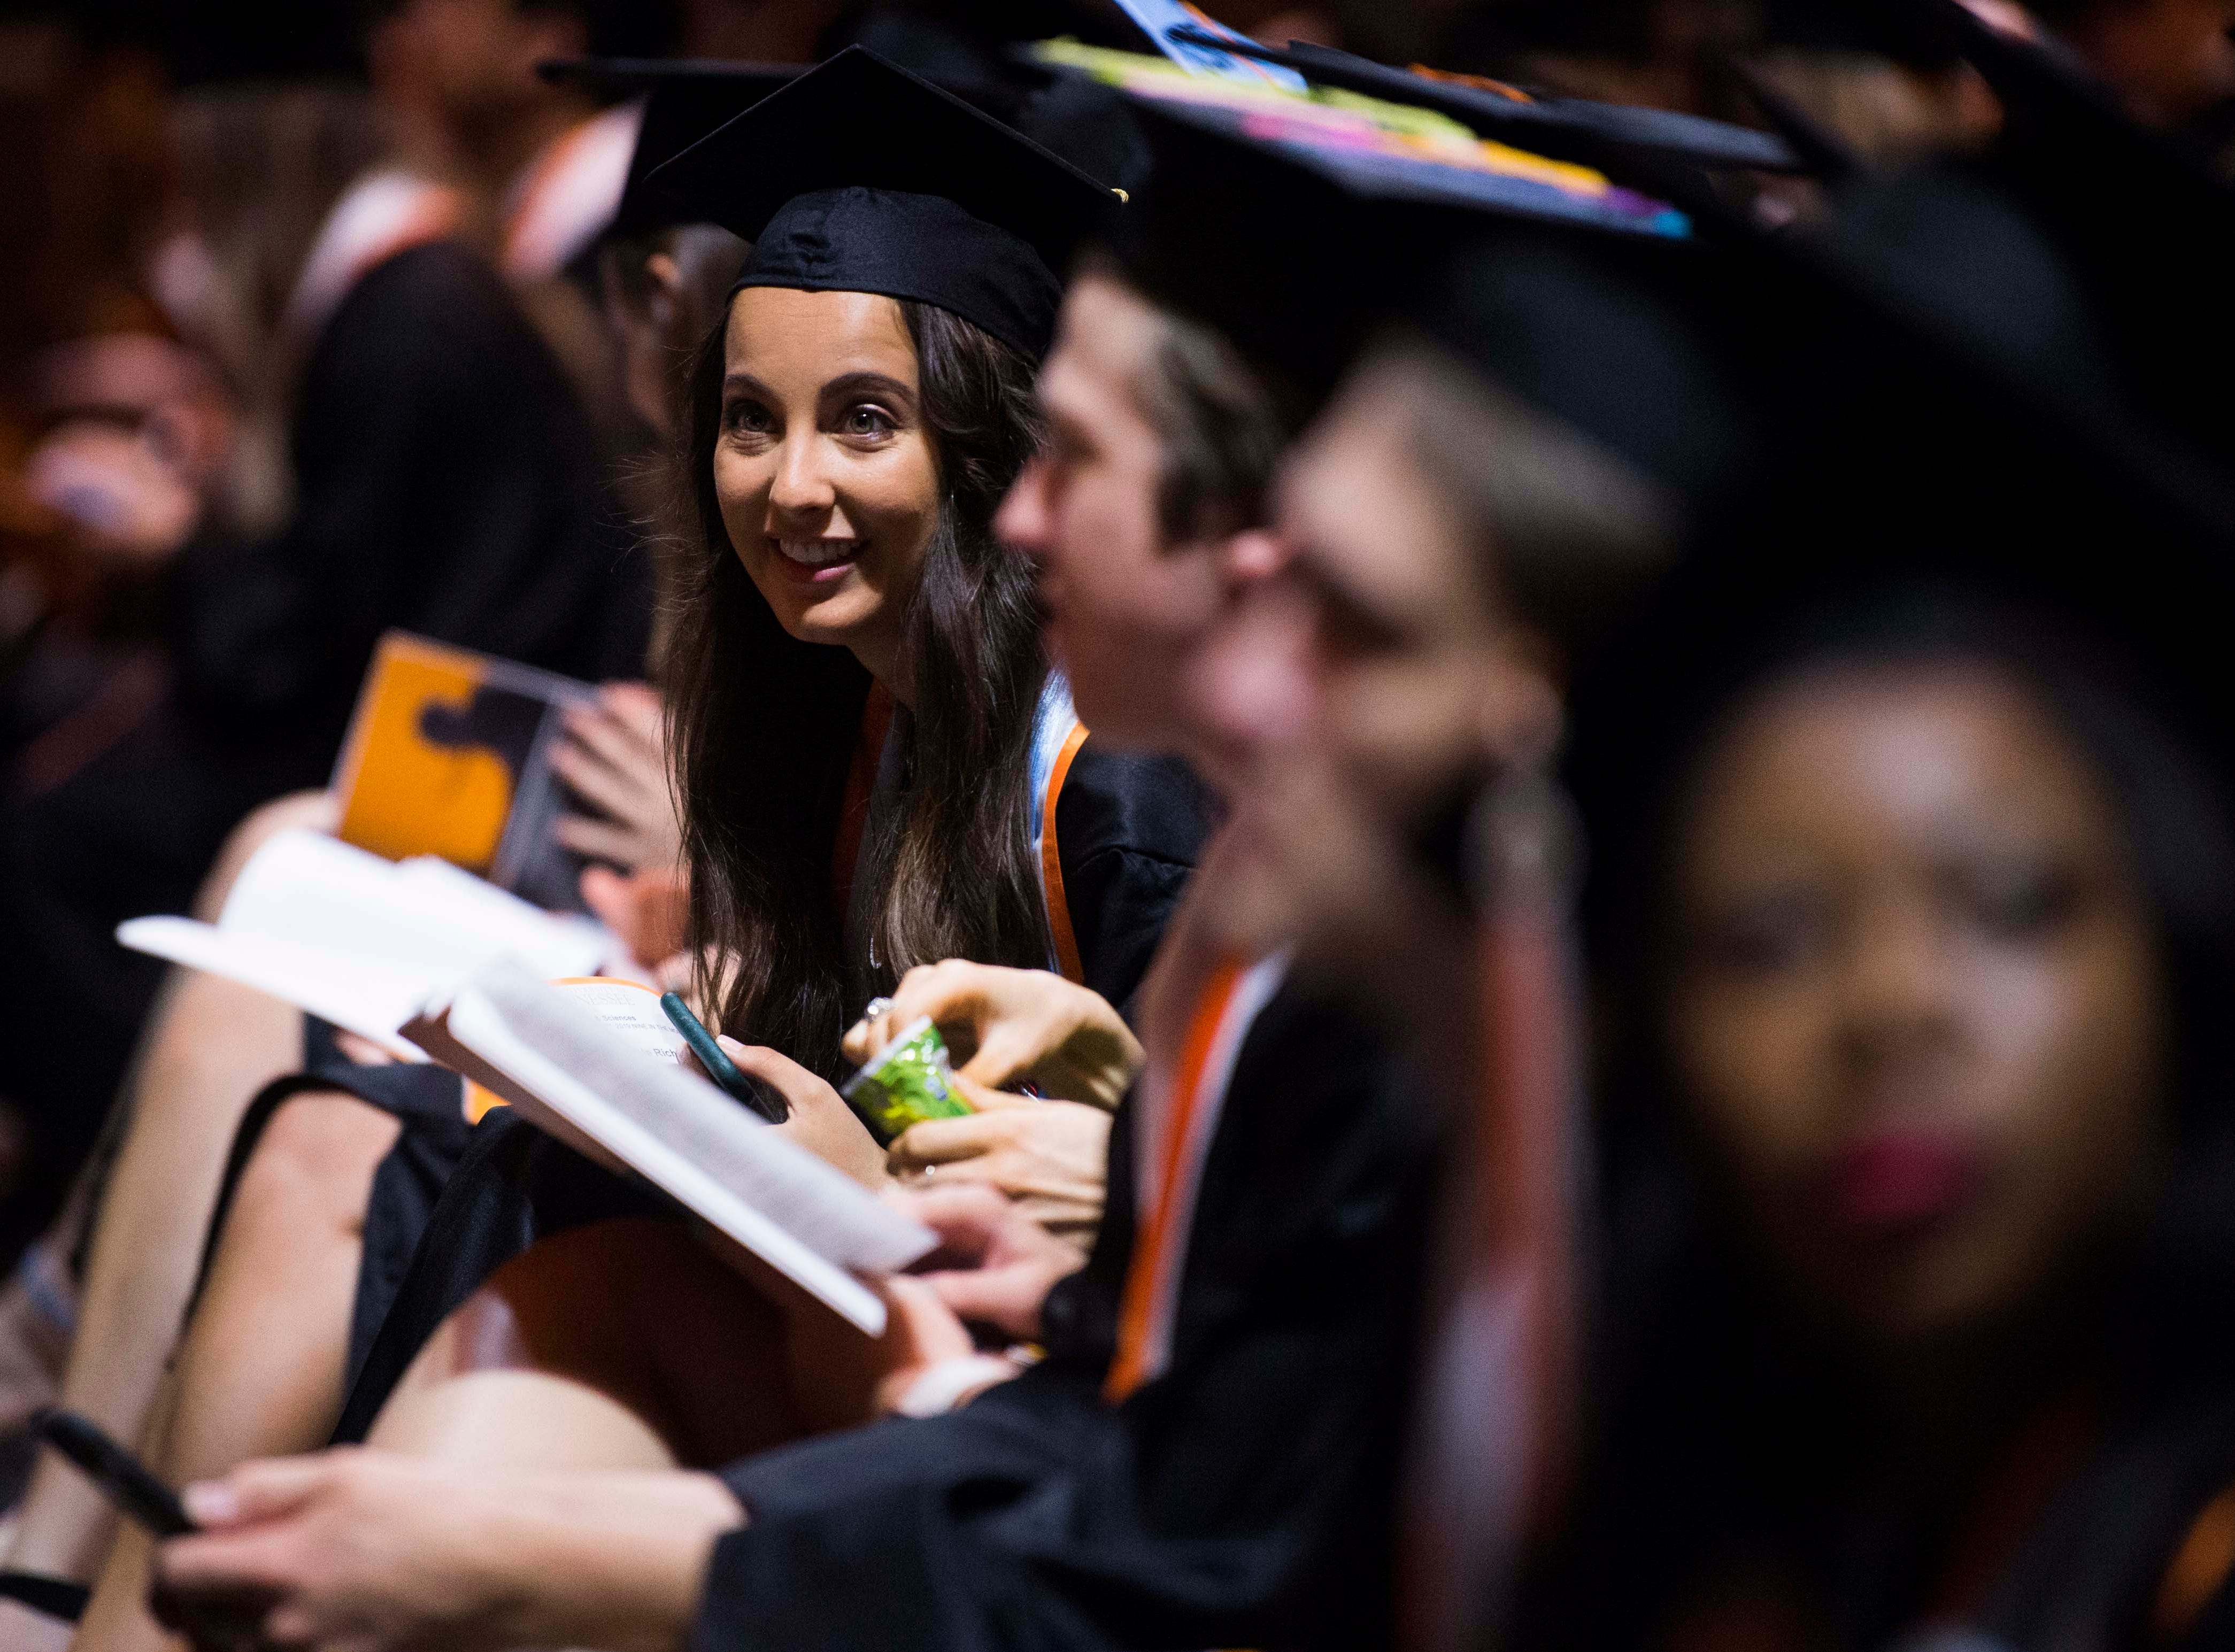 Students listen during University of Tennessee's College of Arts and Sciences commencement in Thompson-Boling arena in Knoxville, Saturday, May 11, 2019.